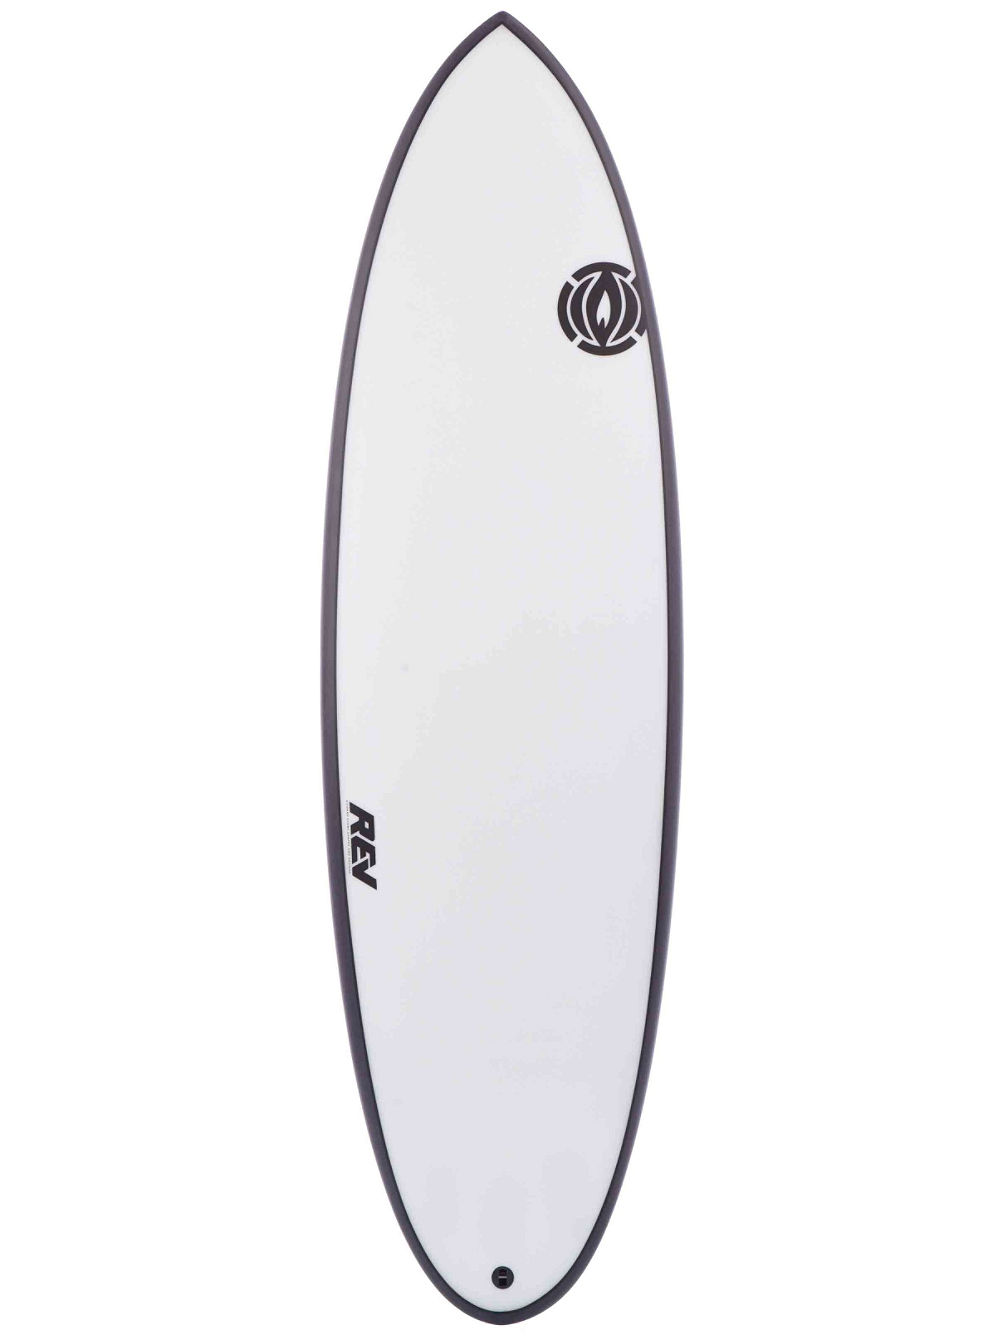 Rev Pod Carbon Patch 5.6 Surfboard